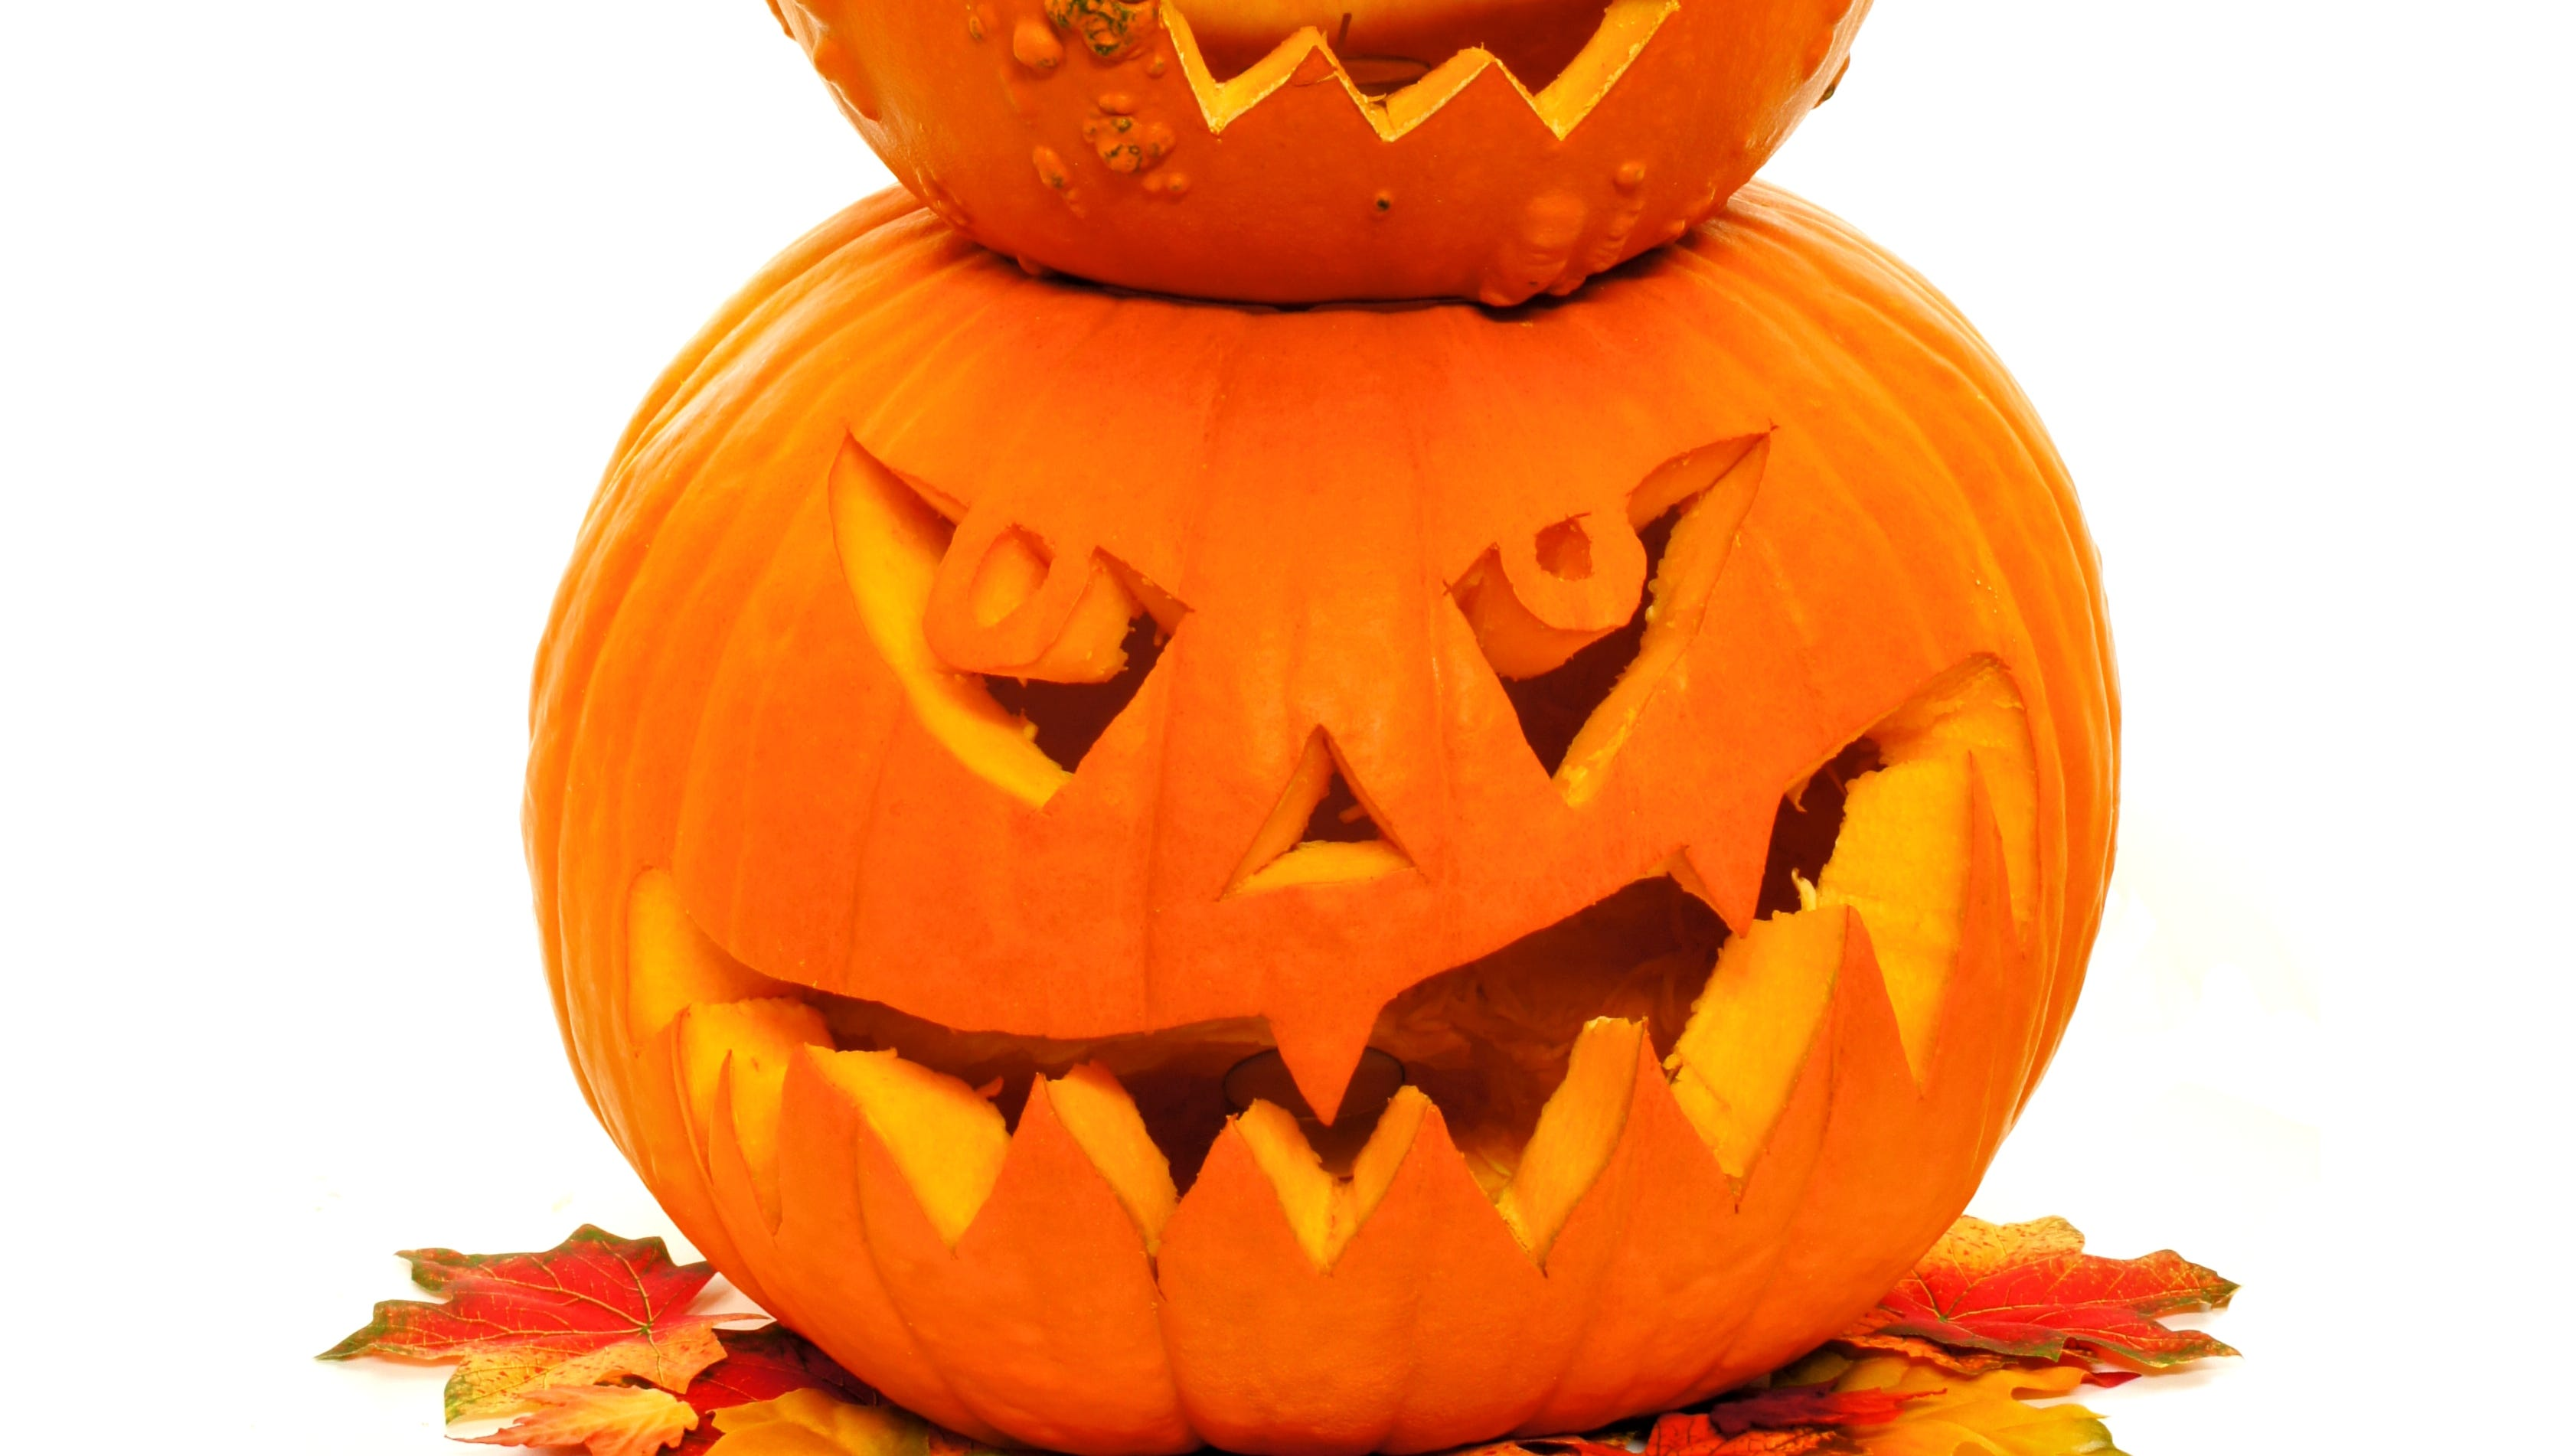 6 uses for pumpkin guts and jack o lanterns after halloween